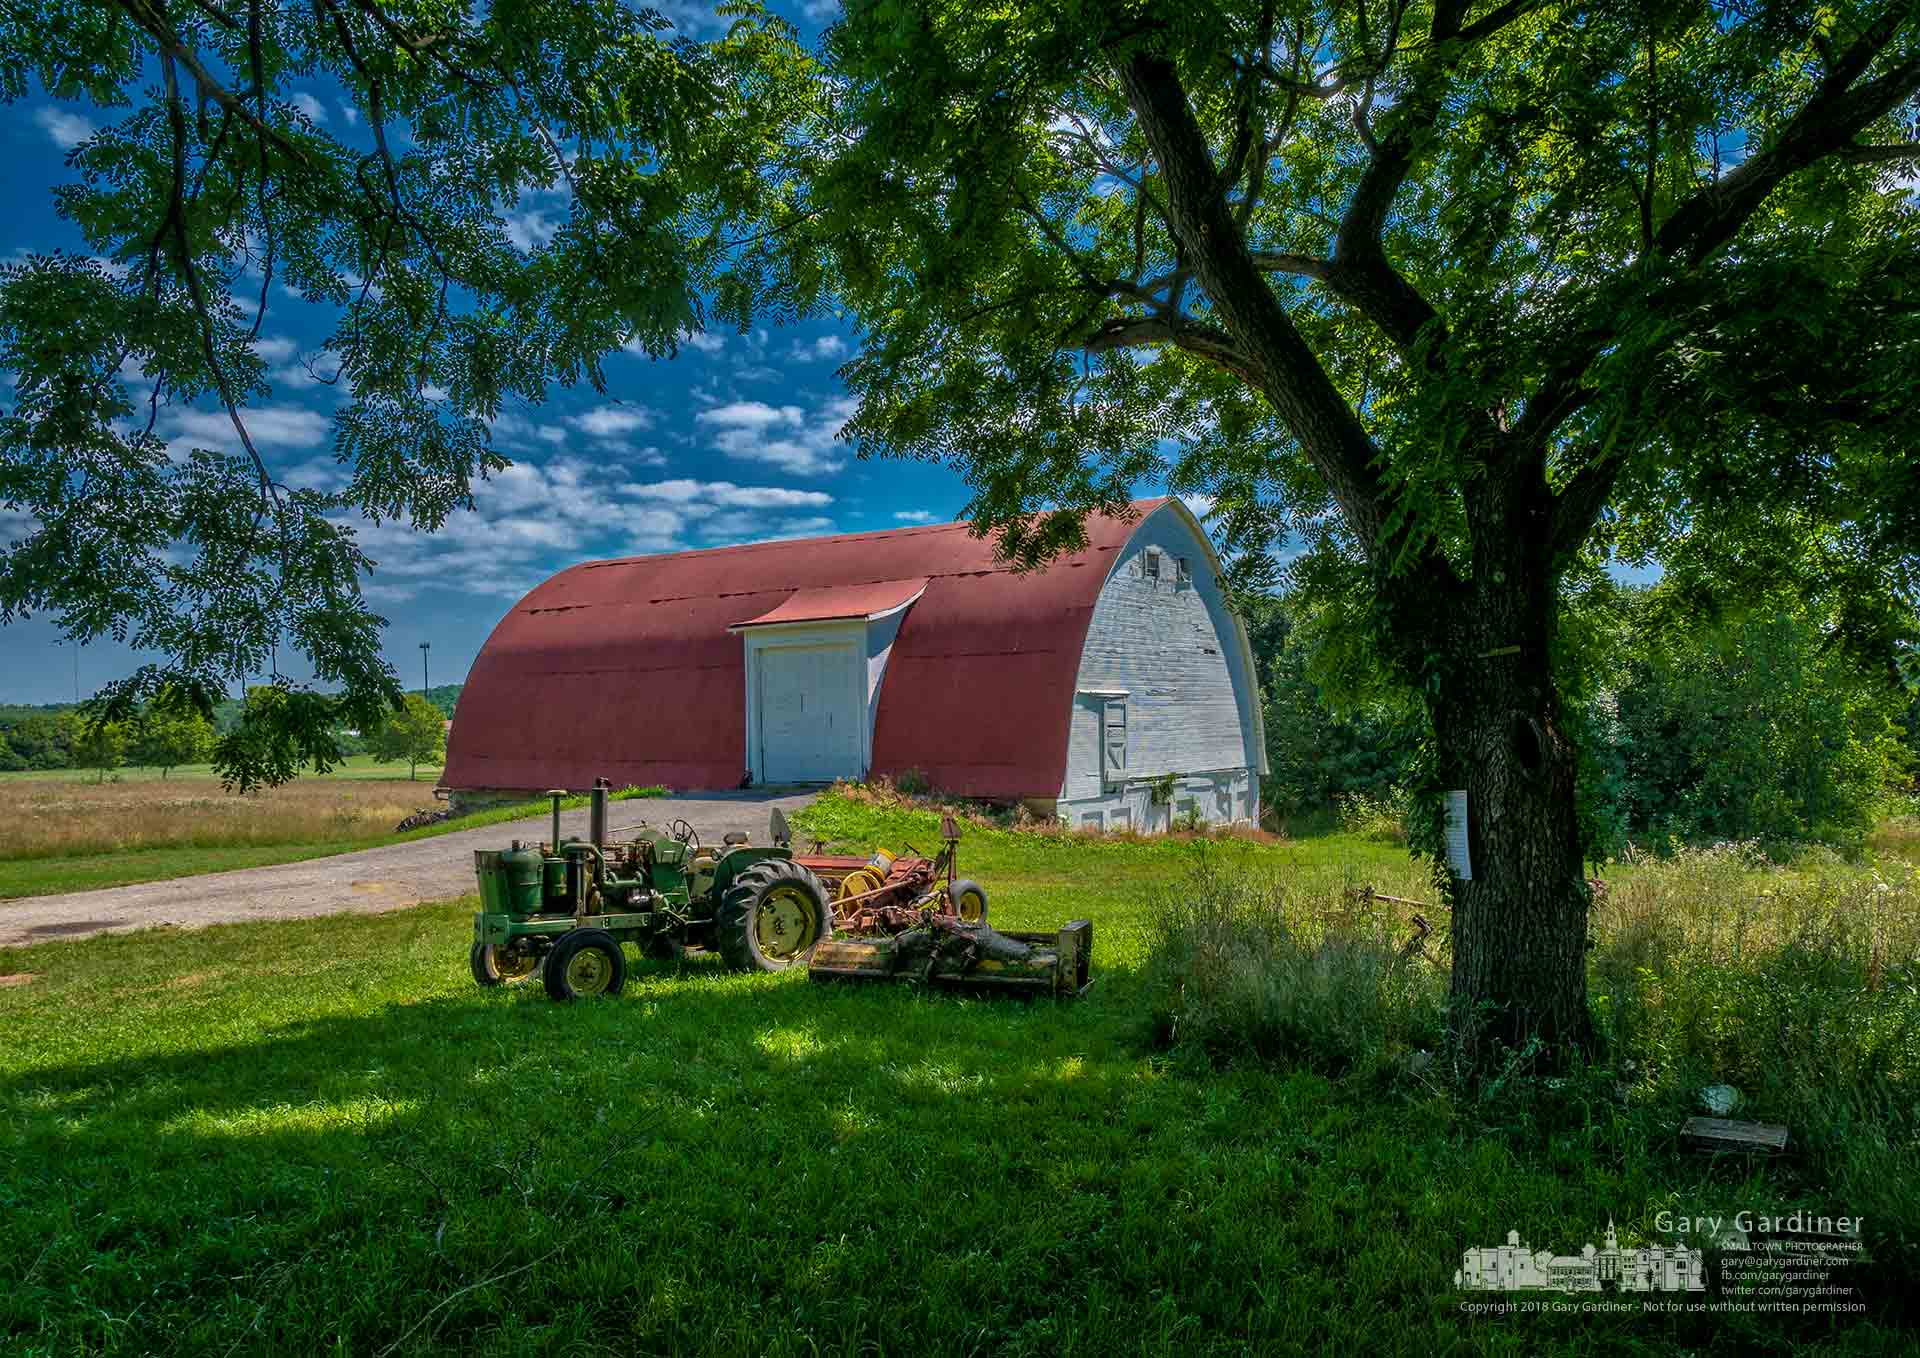 Planting, movement of tractors and implements, and removal of the bee hives changes the look of the Braun Farm property for the summer. My Final Photo for July 9, 2018.